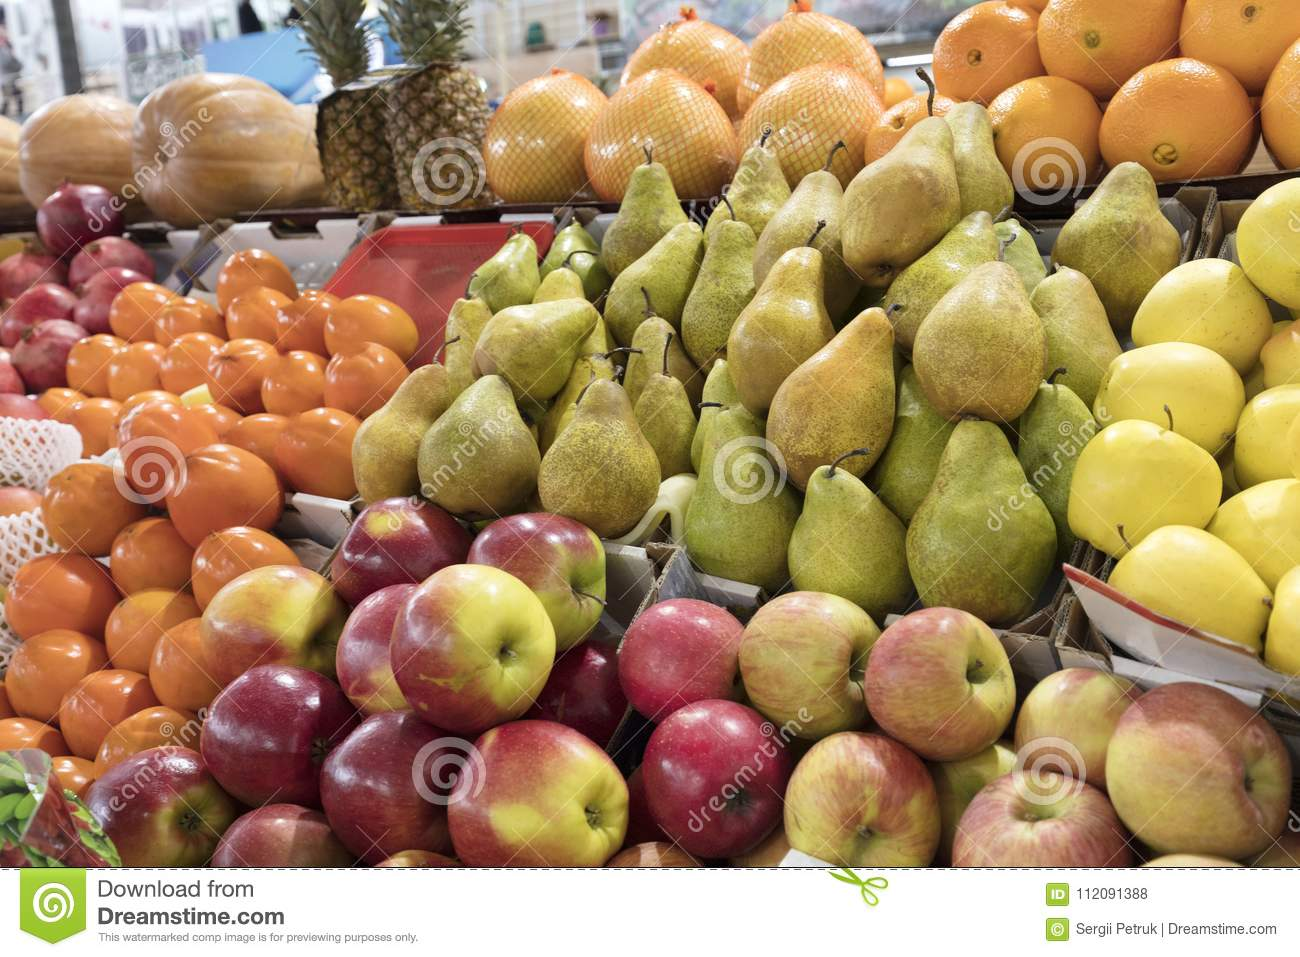 Oranges, apples, pears, pineapple, pomegranate, pumpkin, persimmonlie on the market counter for sale